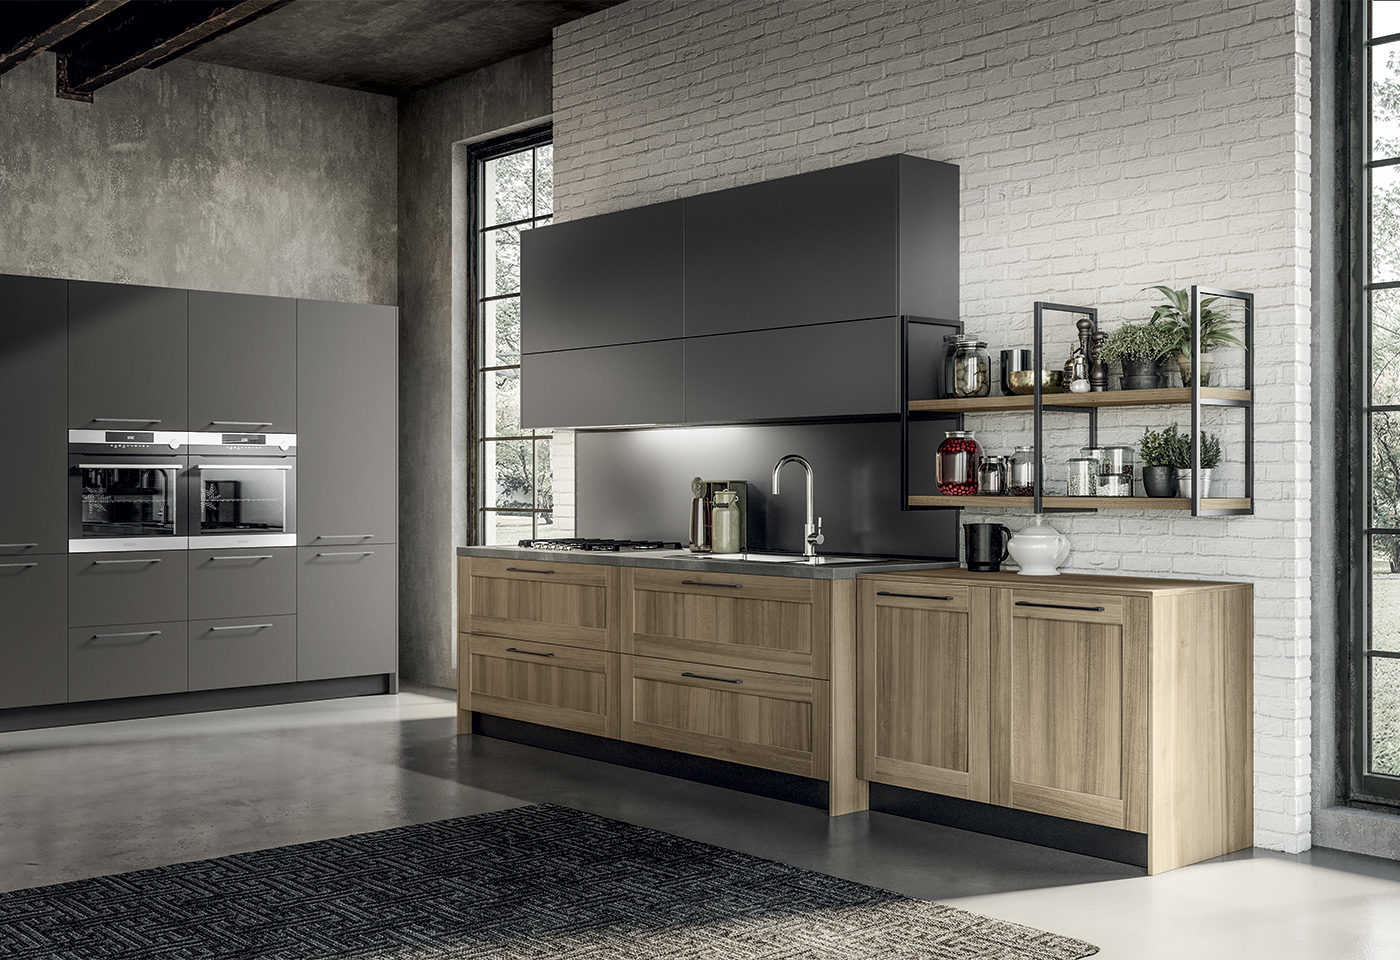 New finishes and compositions for Cloe by Arredo3, featuring versatility